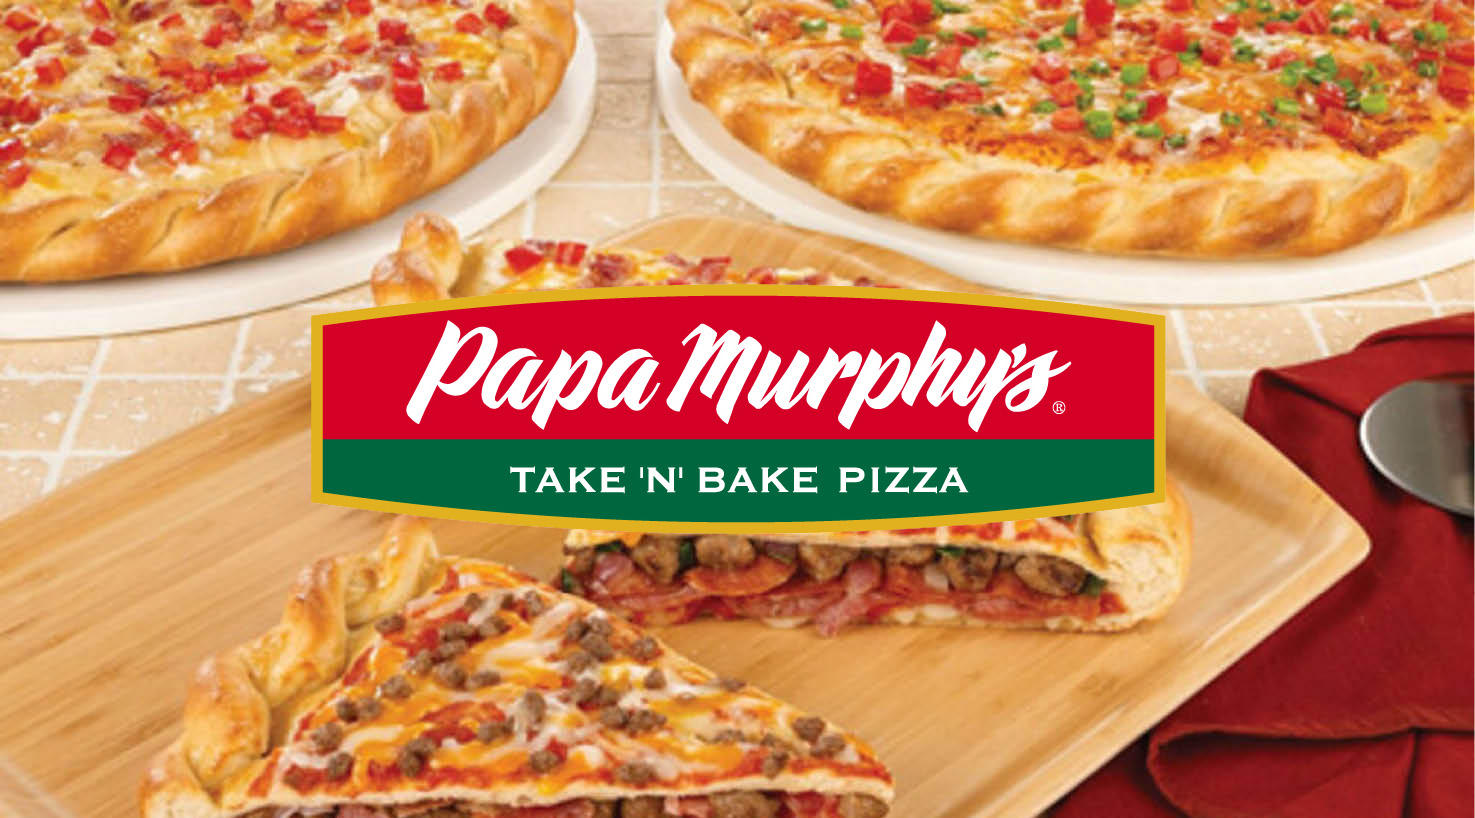 papa murphy's                                                                                       COMMERCIAL   2120 london road   duluth                                                           PLANNED COMPLETION: FALL 2016